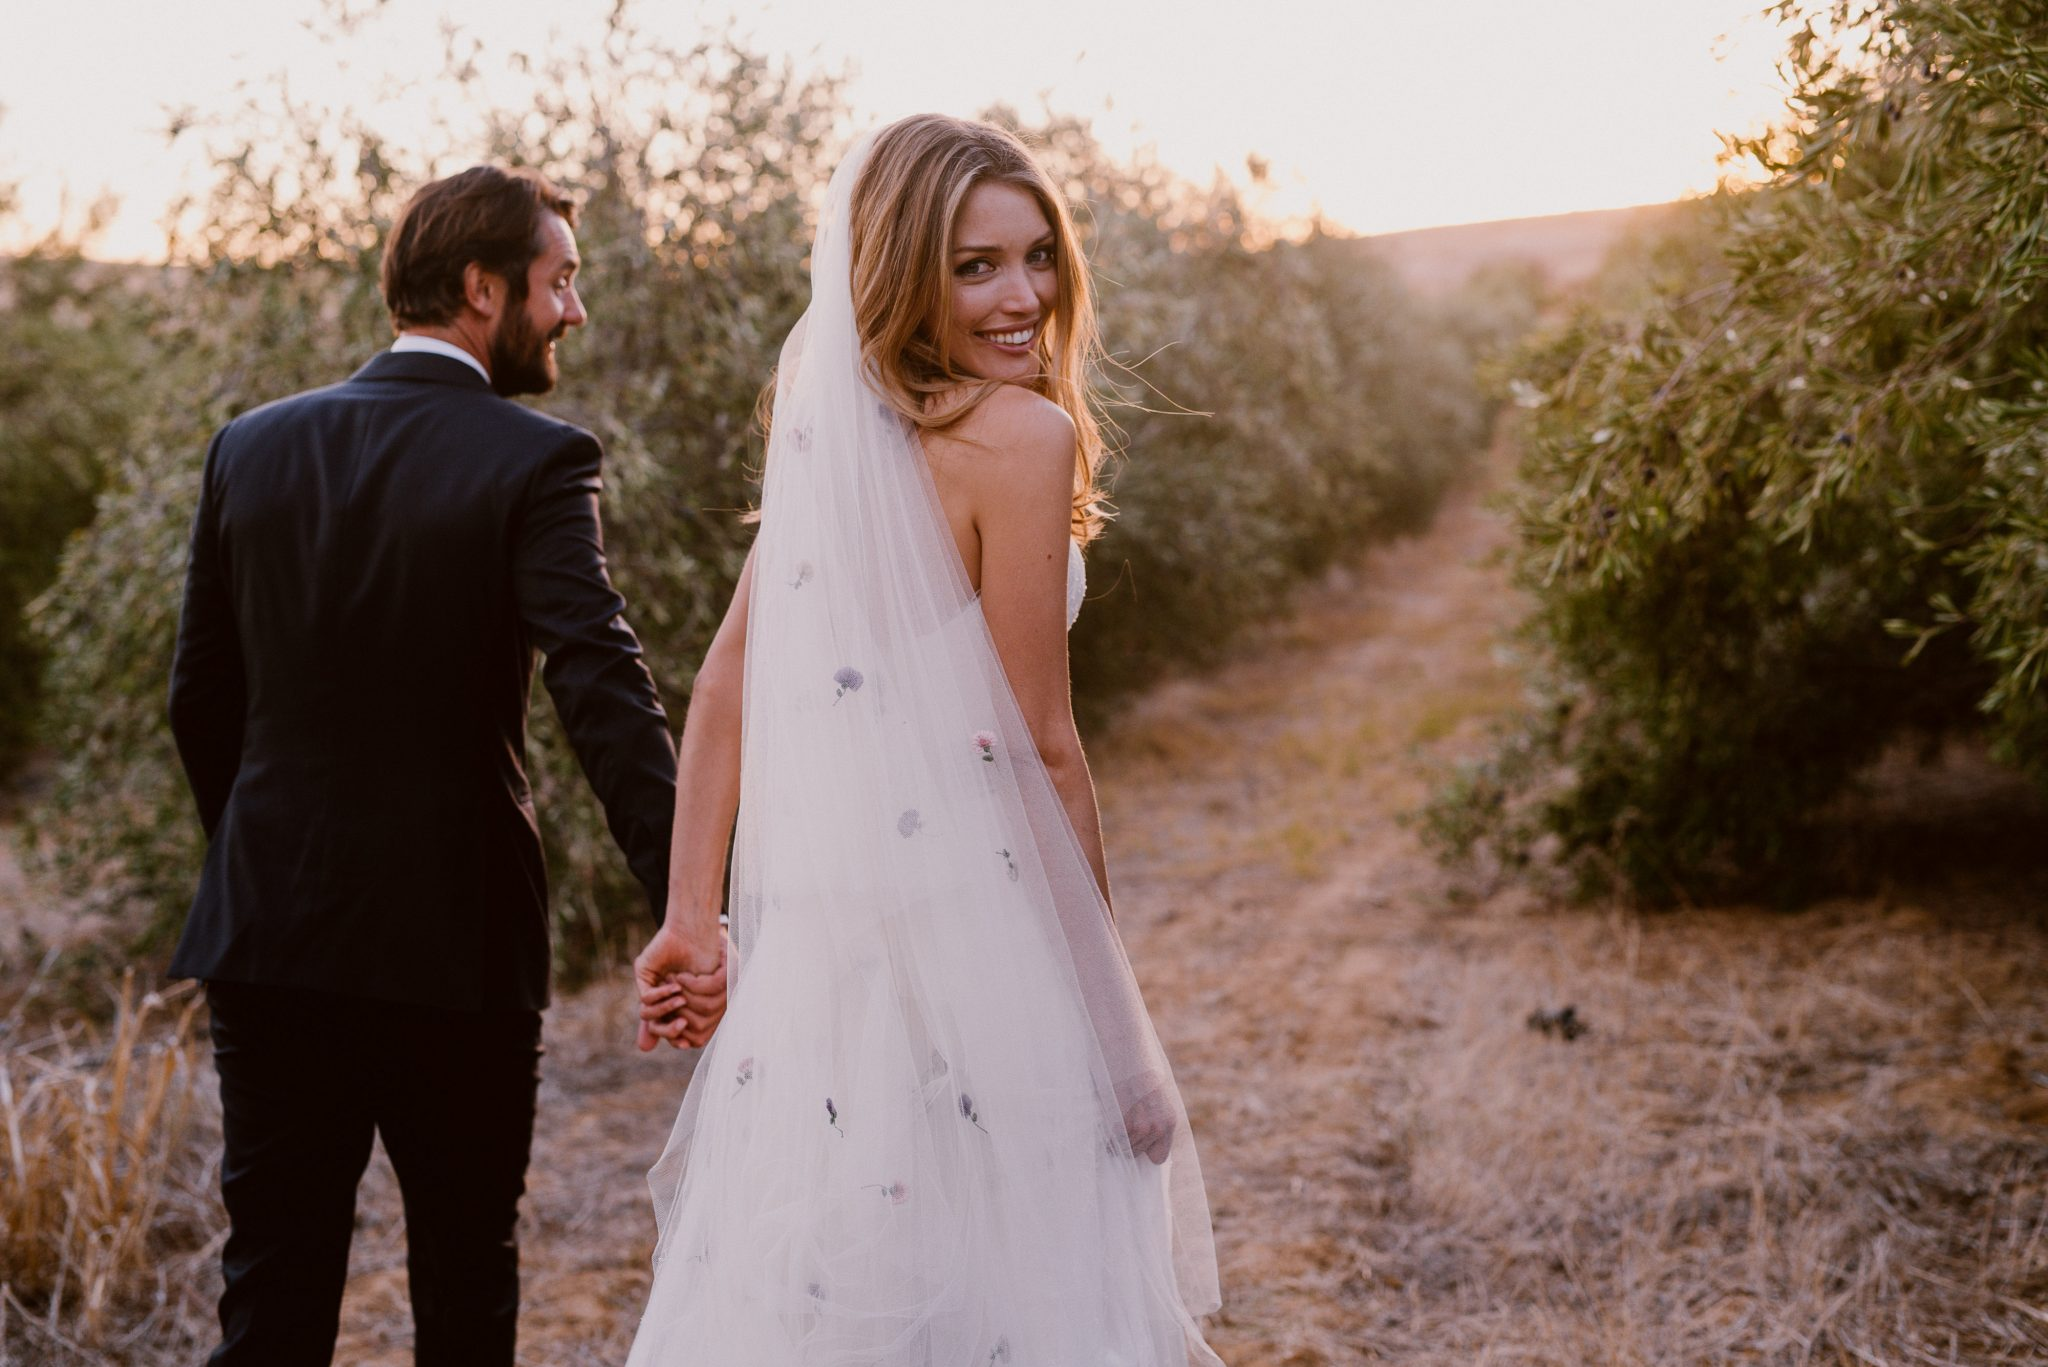 OLIVIA'S STUNNING WEDDING IN SOUTH AFRICA